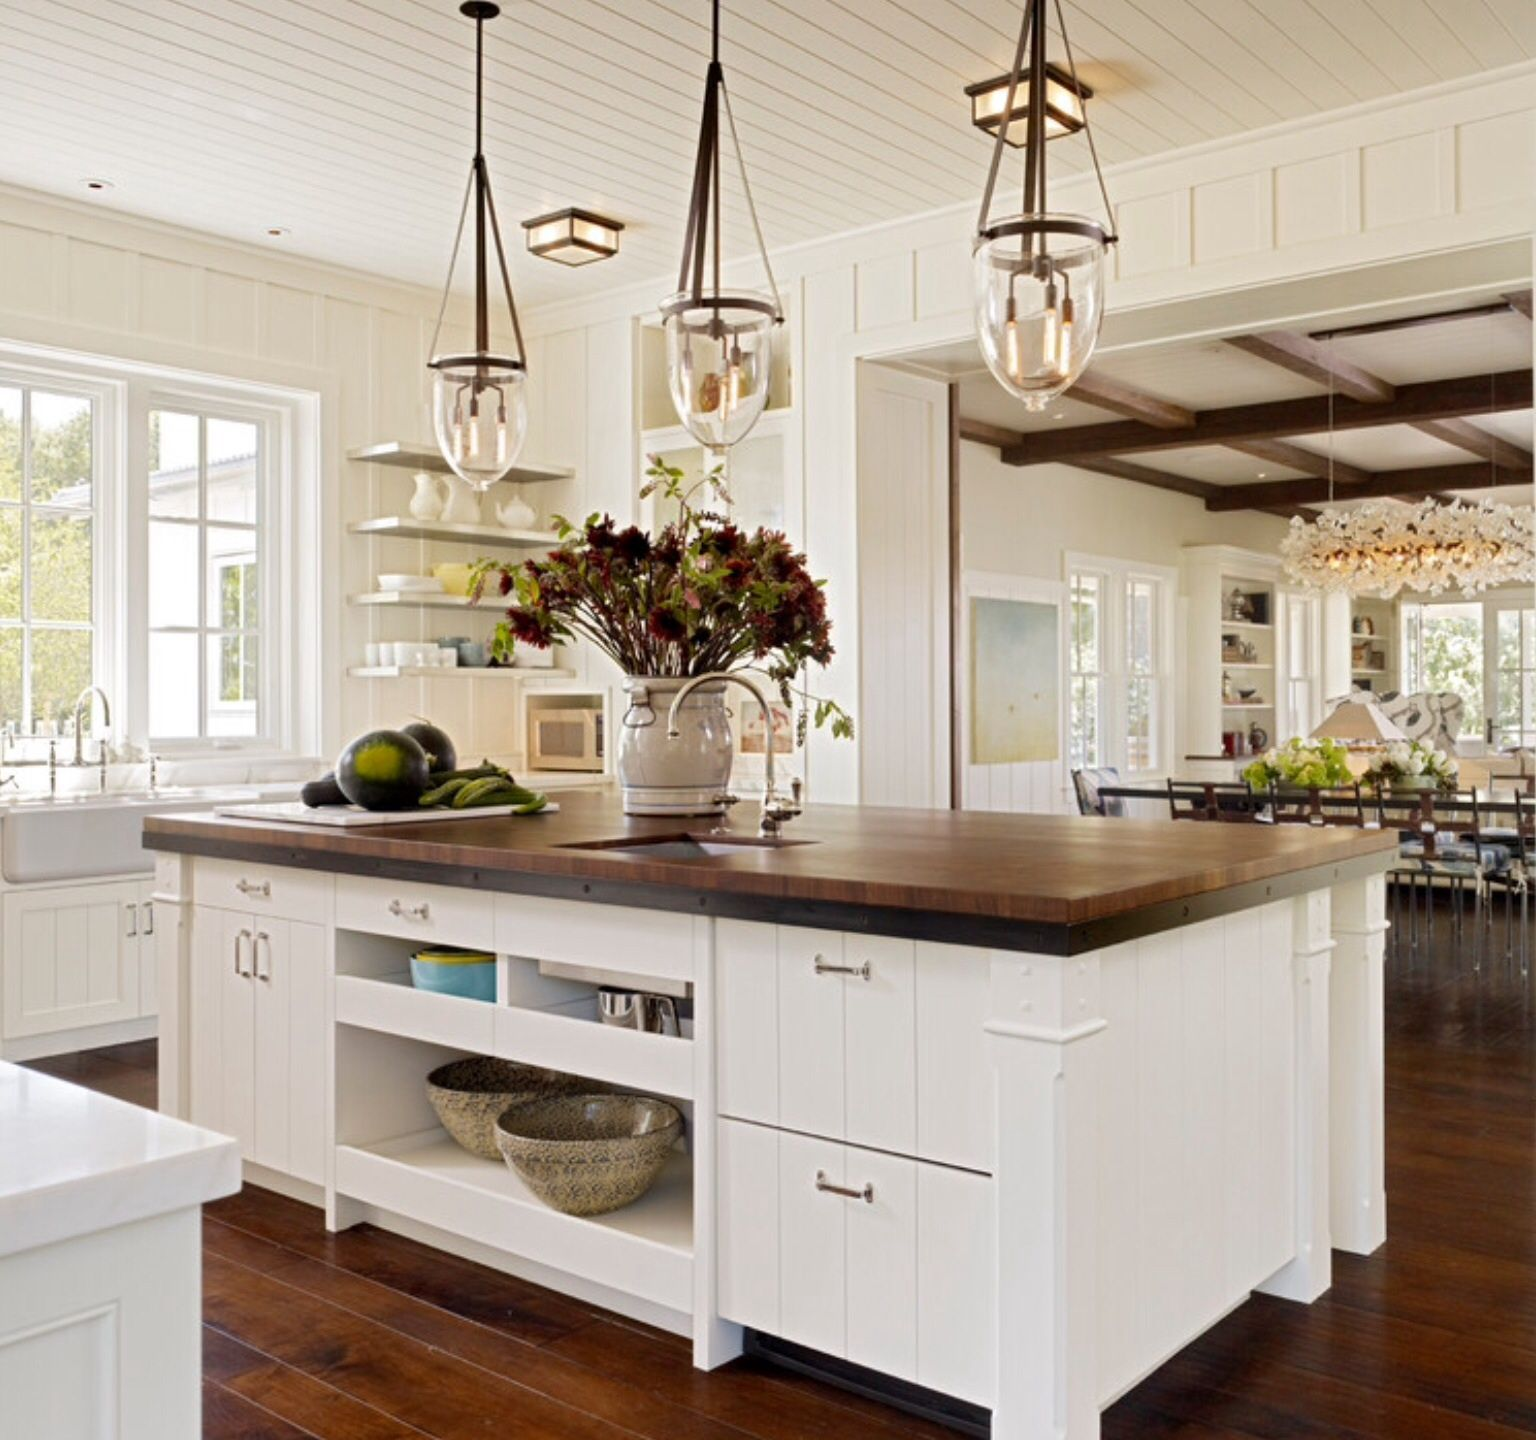 Looking out kitchen window  pin by barbara on open shelving  pinterest  kitchens house and